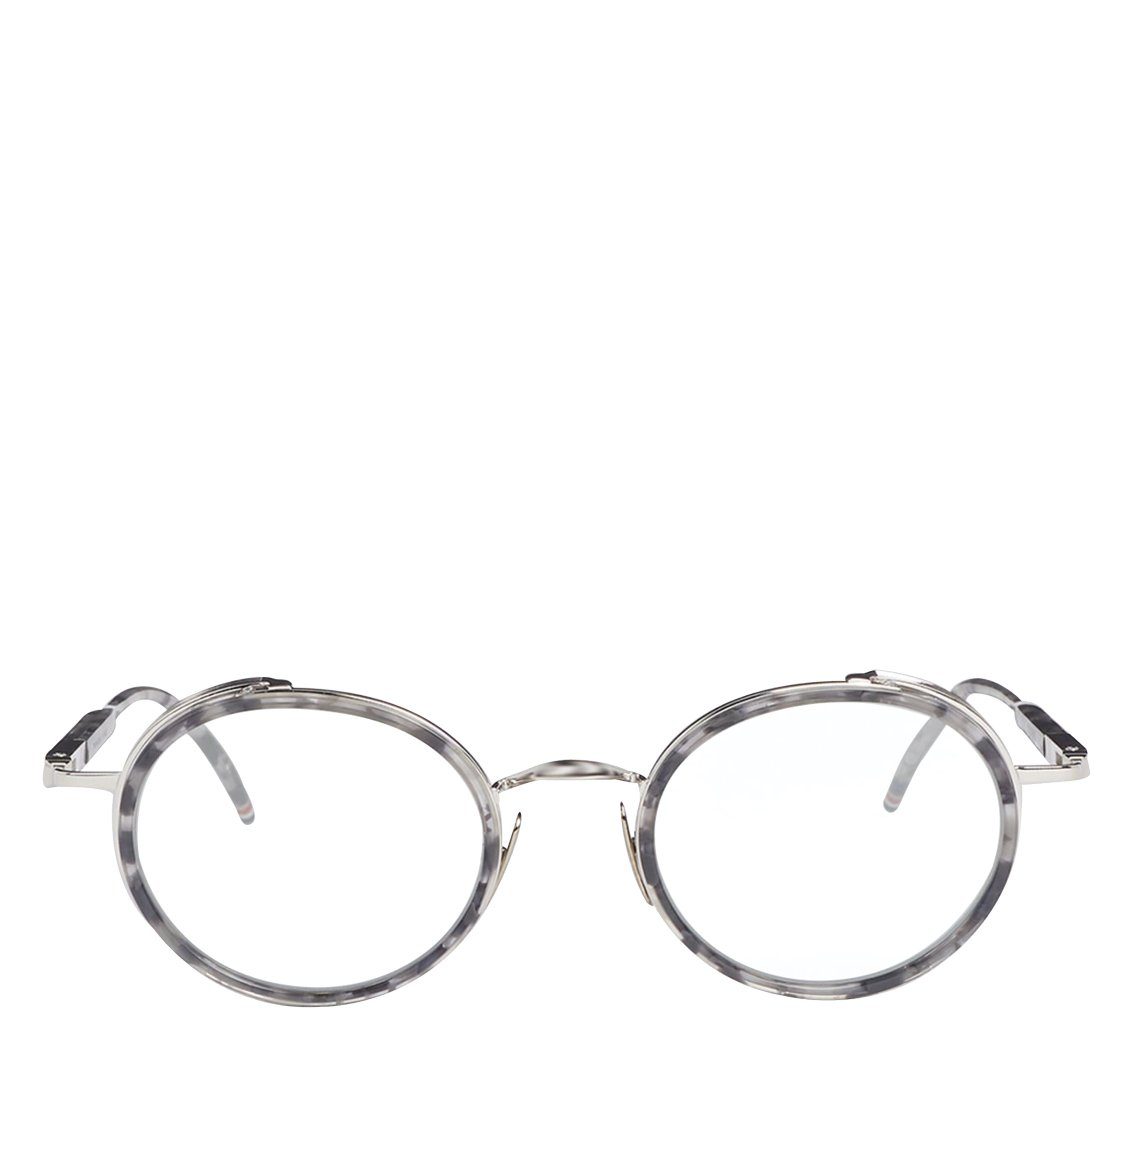 Thom Browne Grey And Silver Round Optical Glasses Γυαλιά Οράσεως